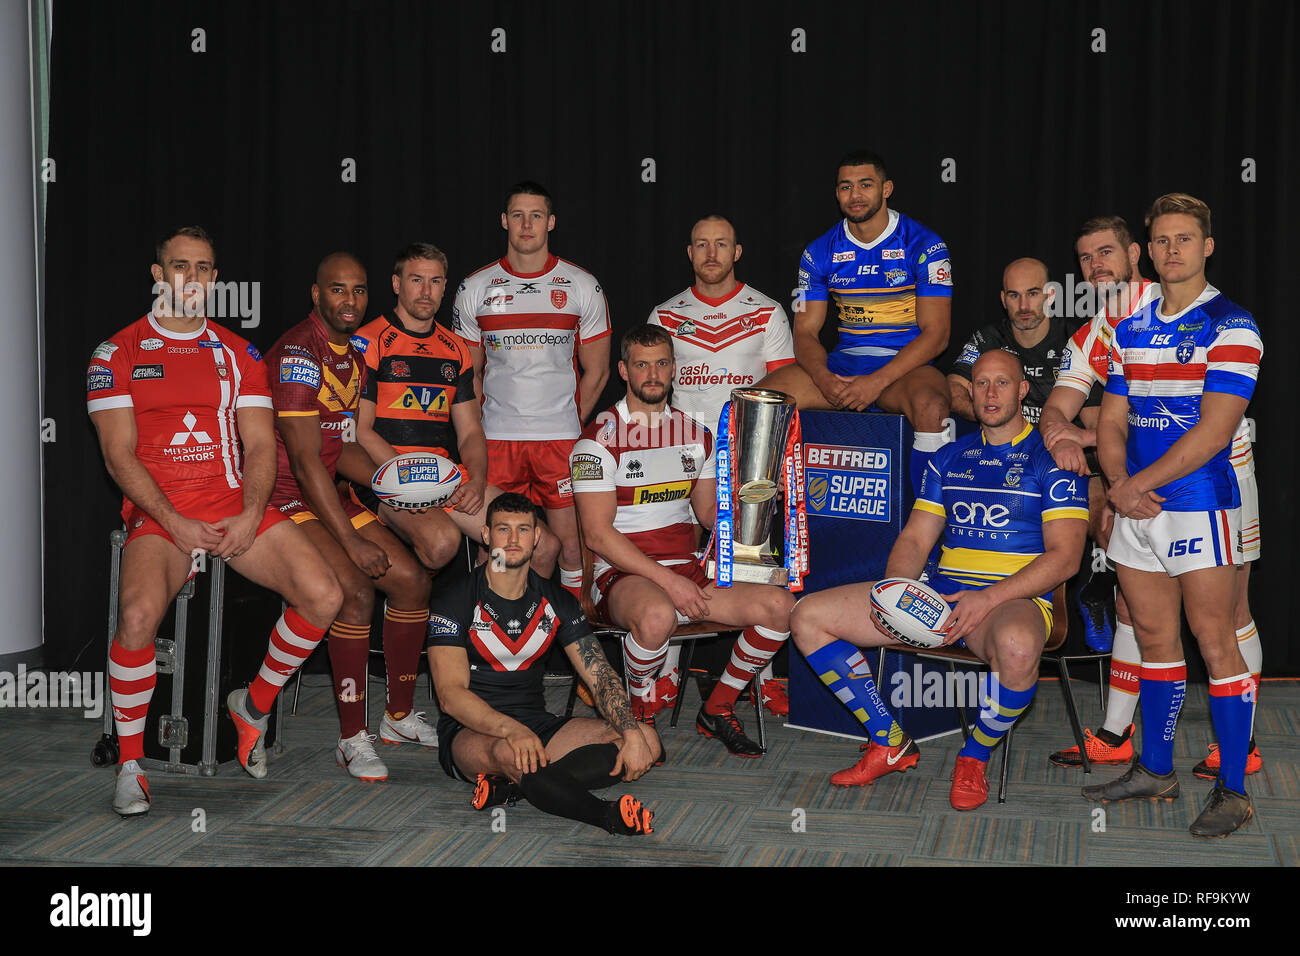 24th January 2019, Old Trafford, Manchester, England, Betfred Super League Launch 2019 ; Captains group shot   Credit: Mark Cosgrove/News Images - Stock Image